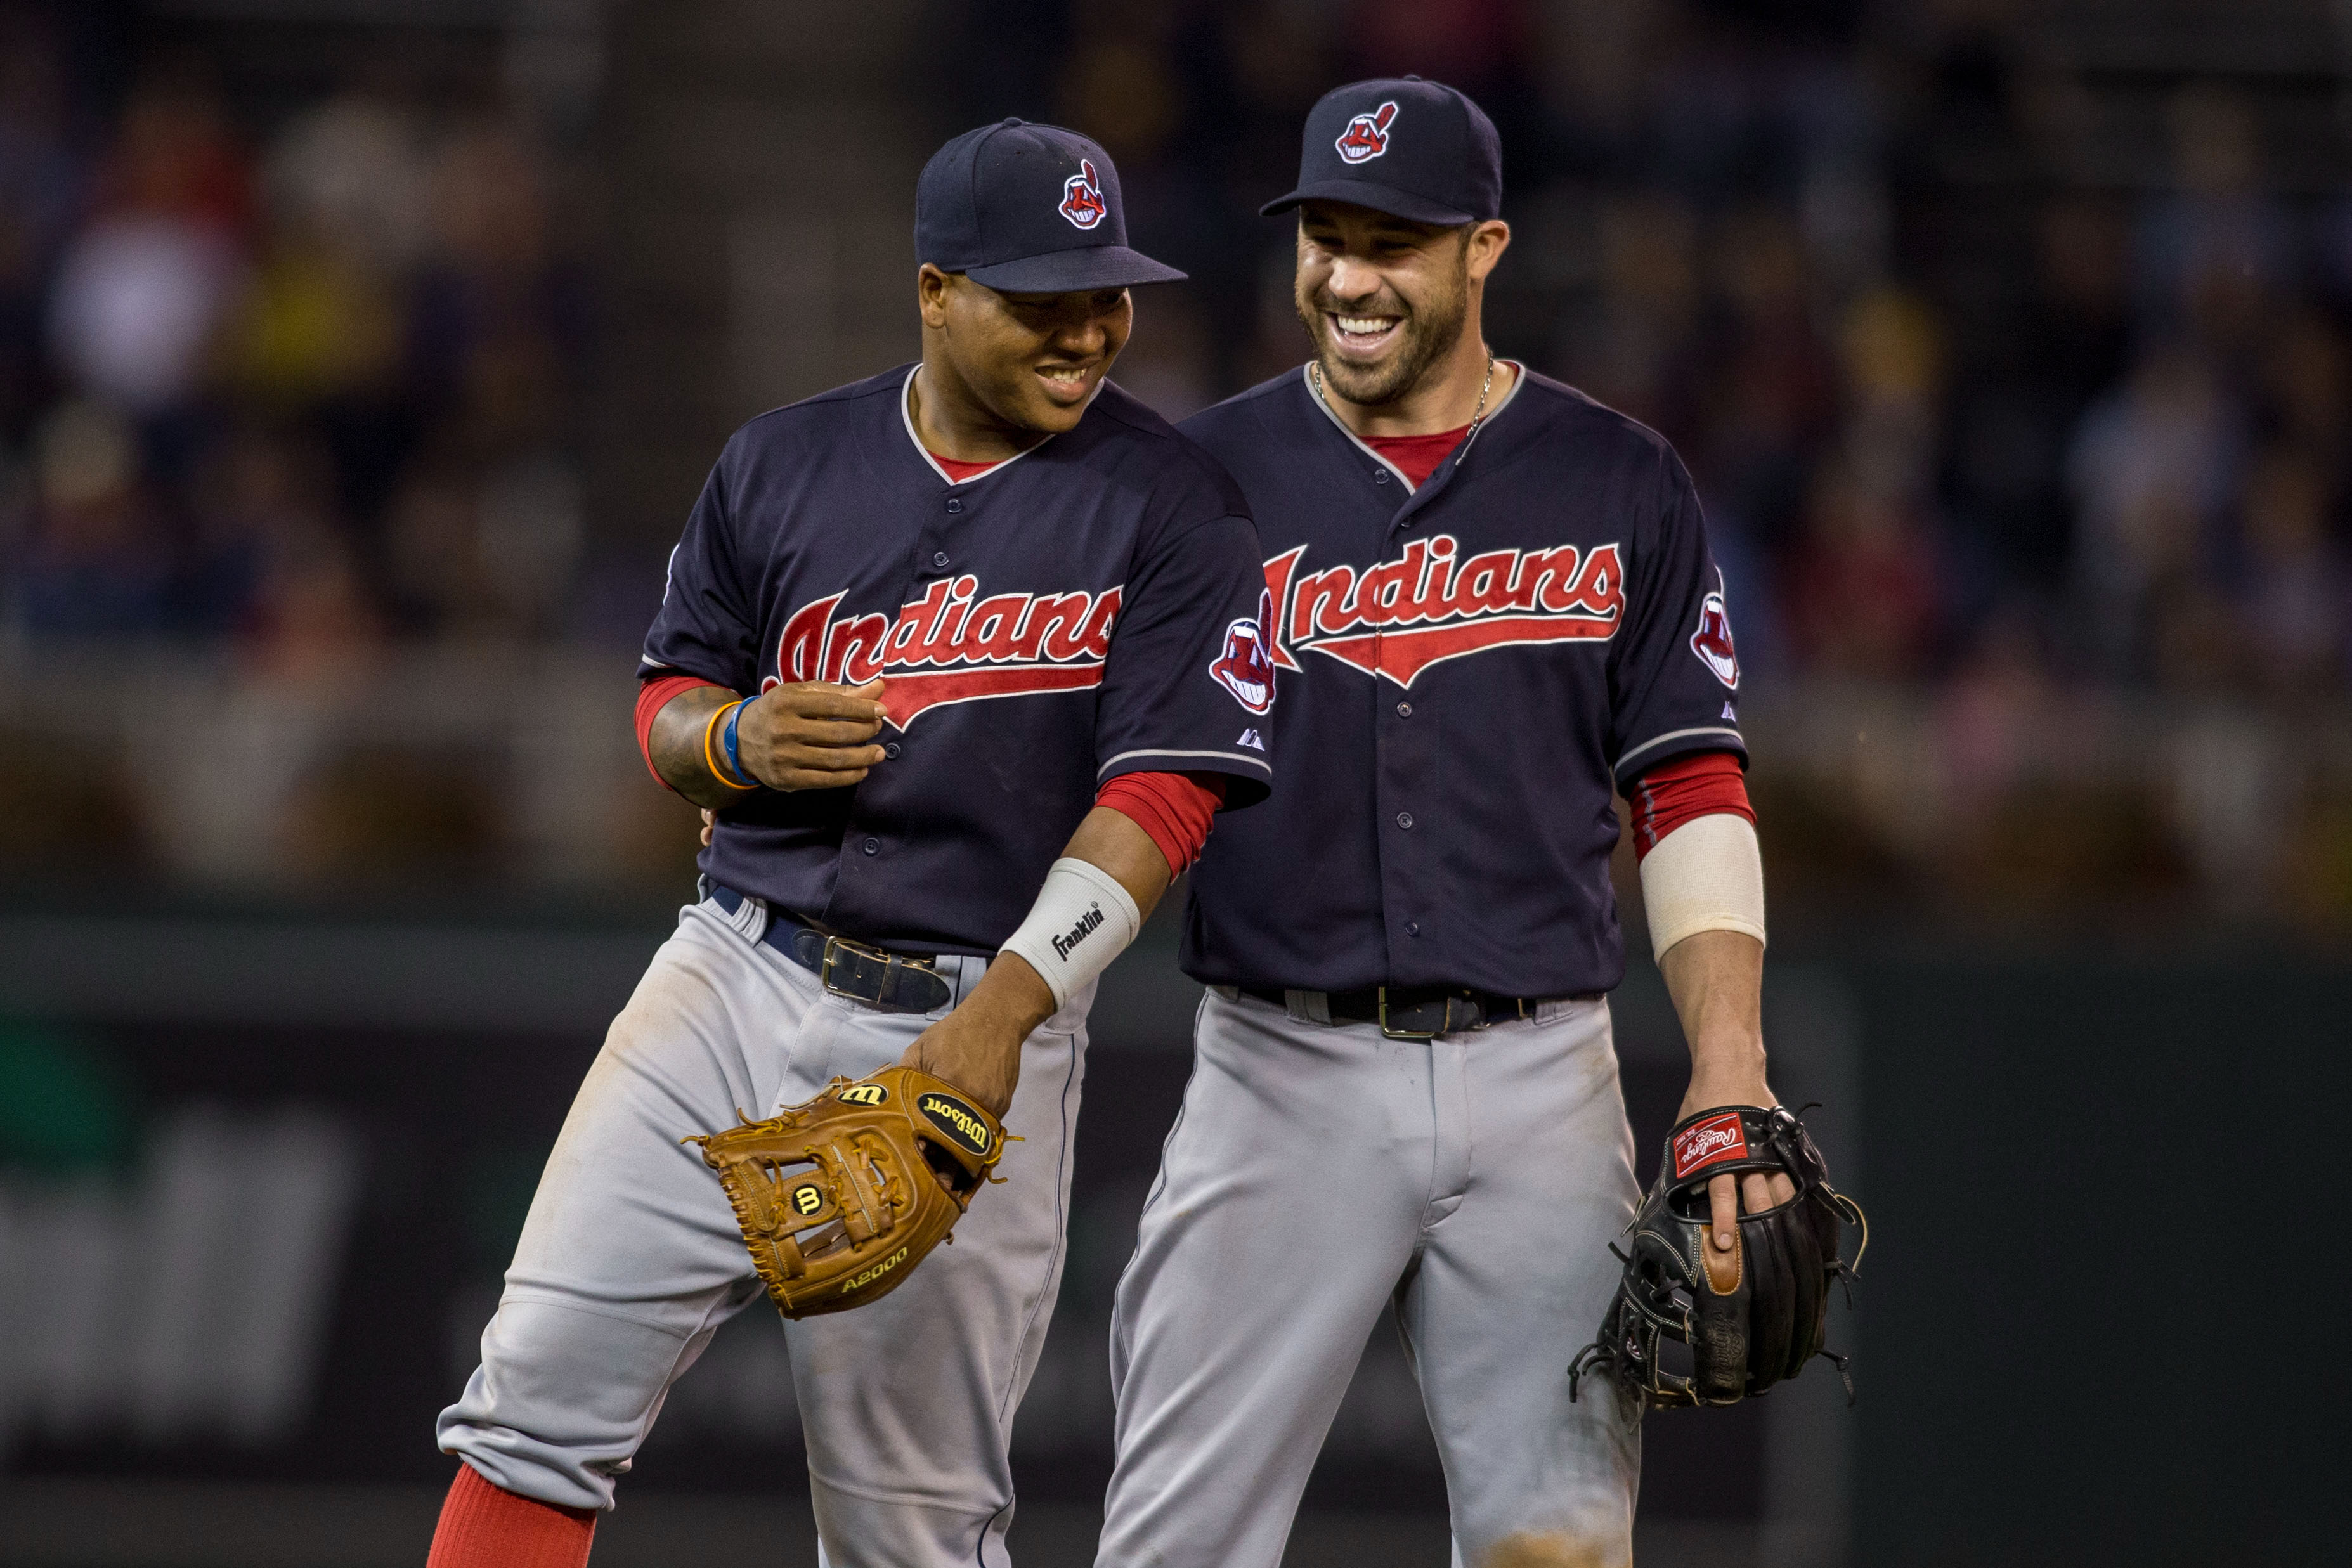 Cleveland Indians 3 players who can start the season at second base